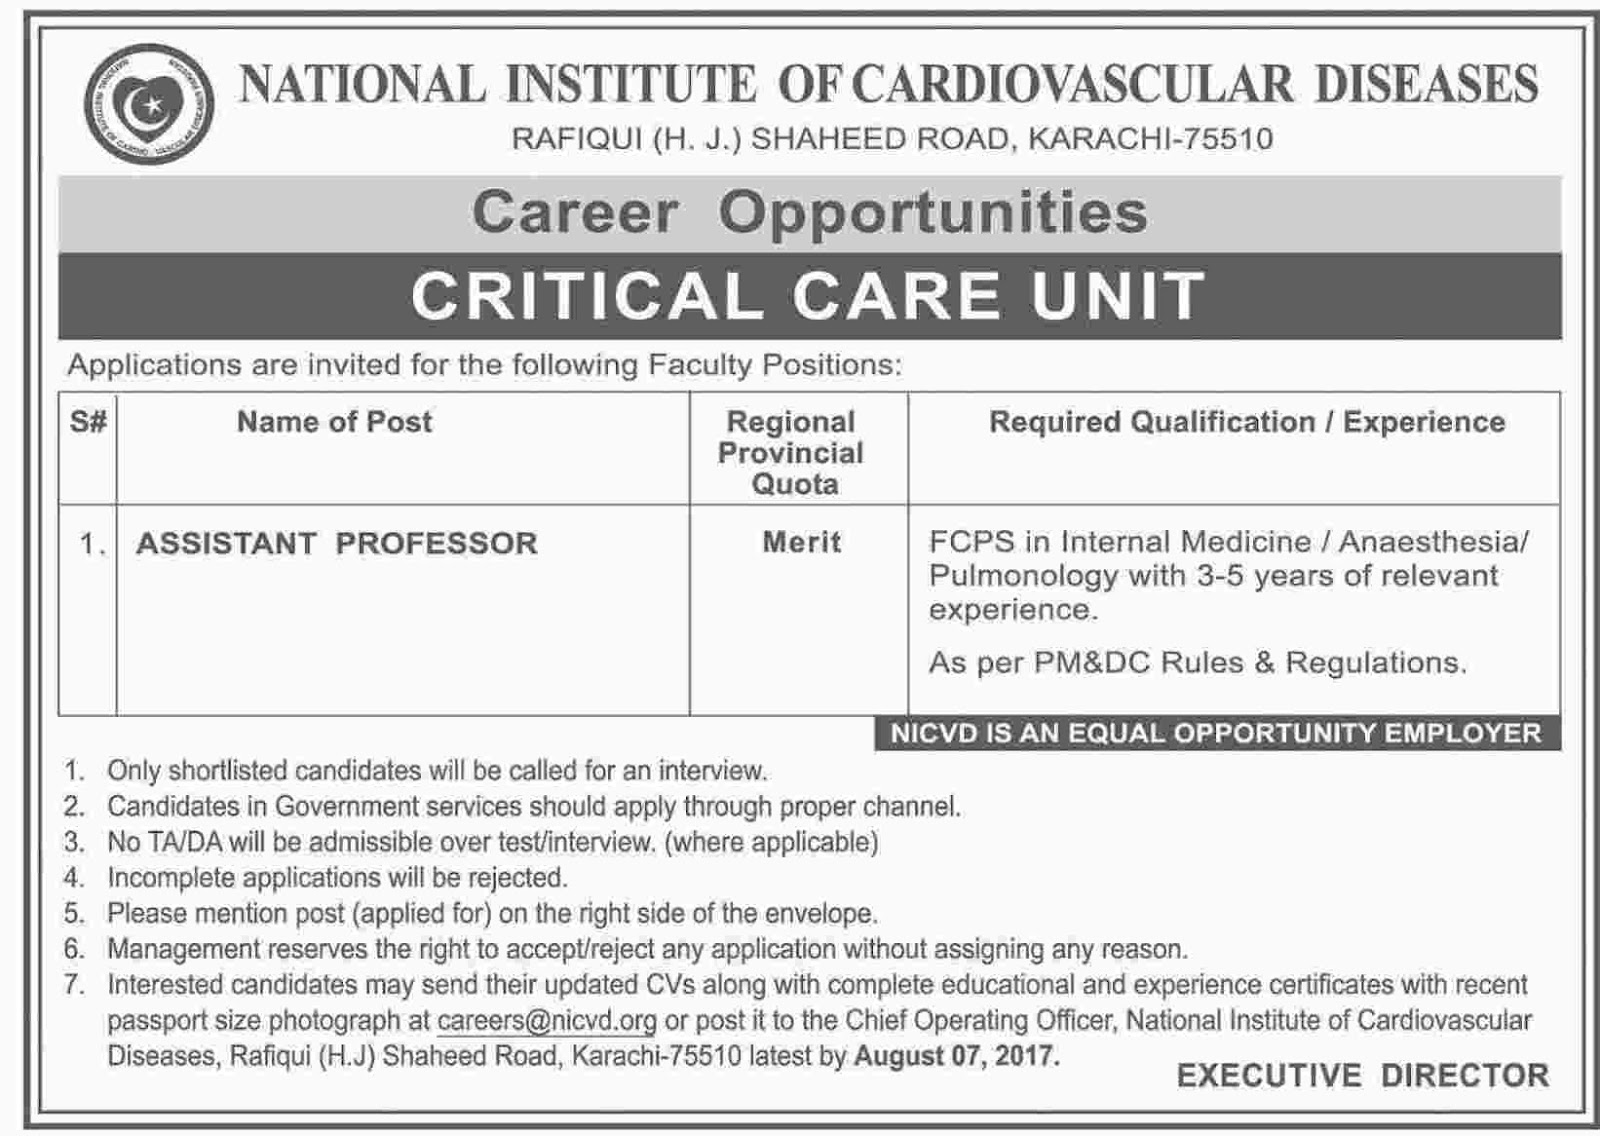 Jobs In National Institute Of Cardiovascular Diseases Karachi Jul 2017